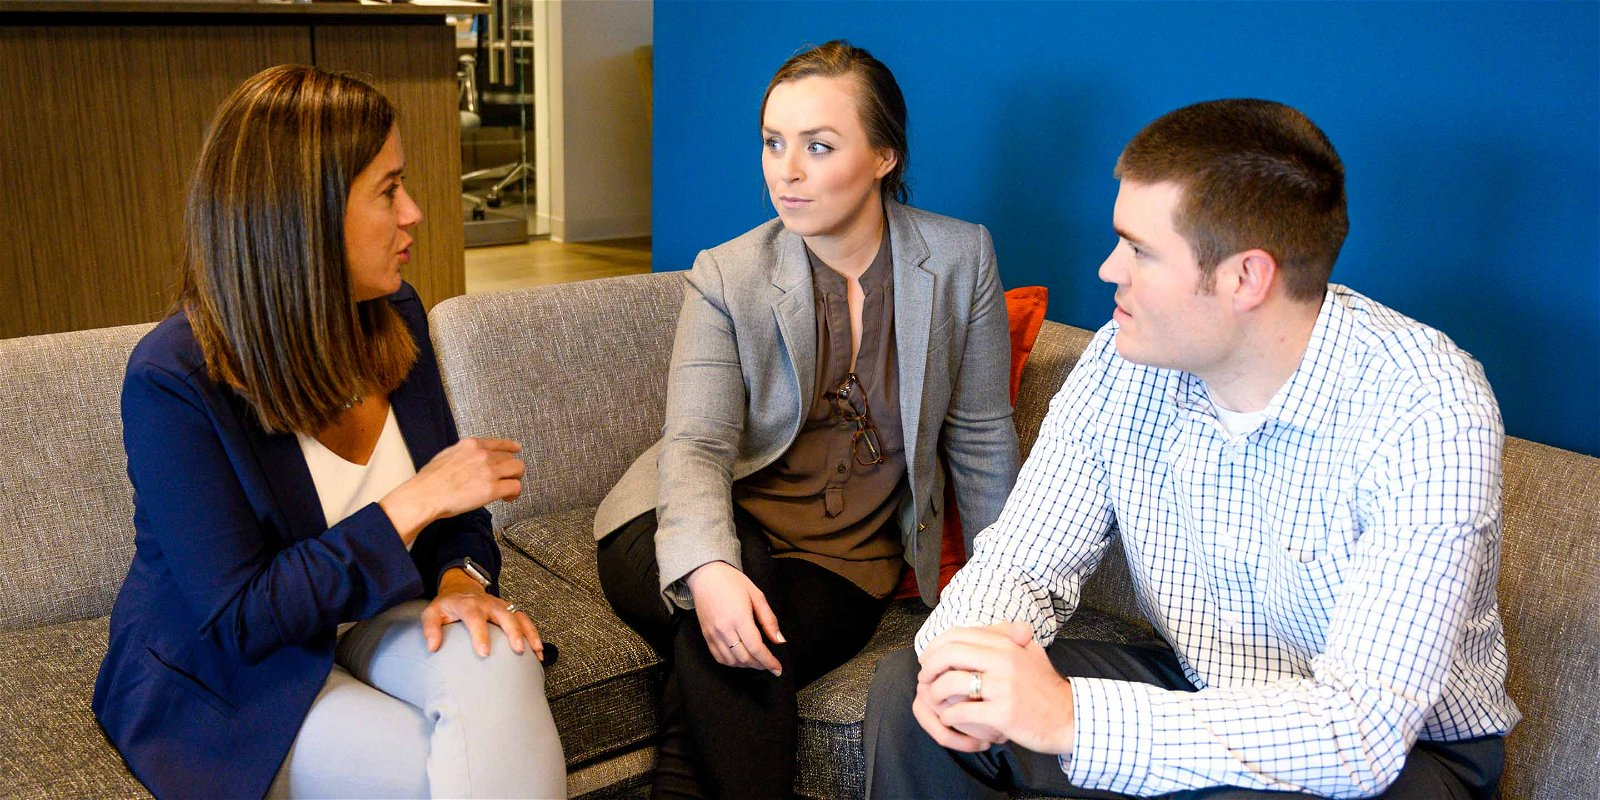 Linkage employees sit on office couch to chat